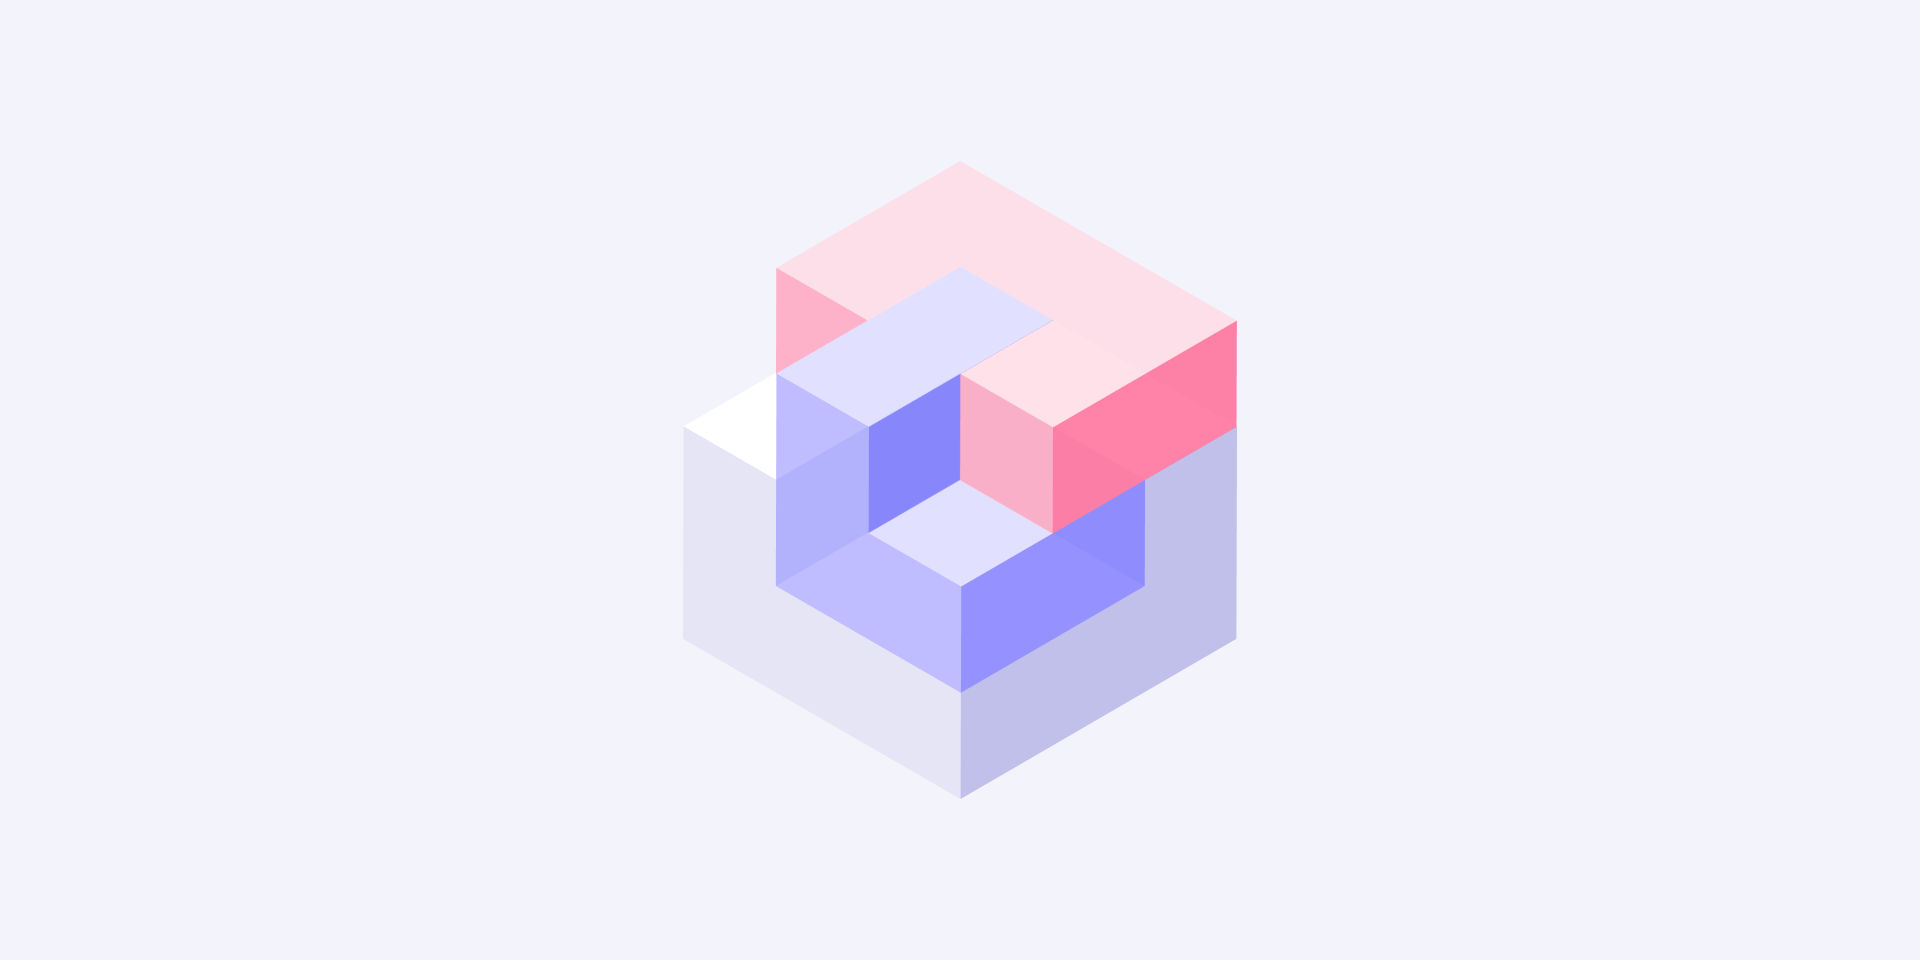 Celebrating what the Cube.js community accomplished since October 2020